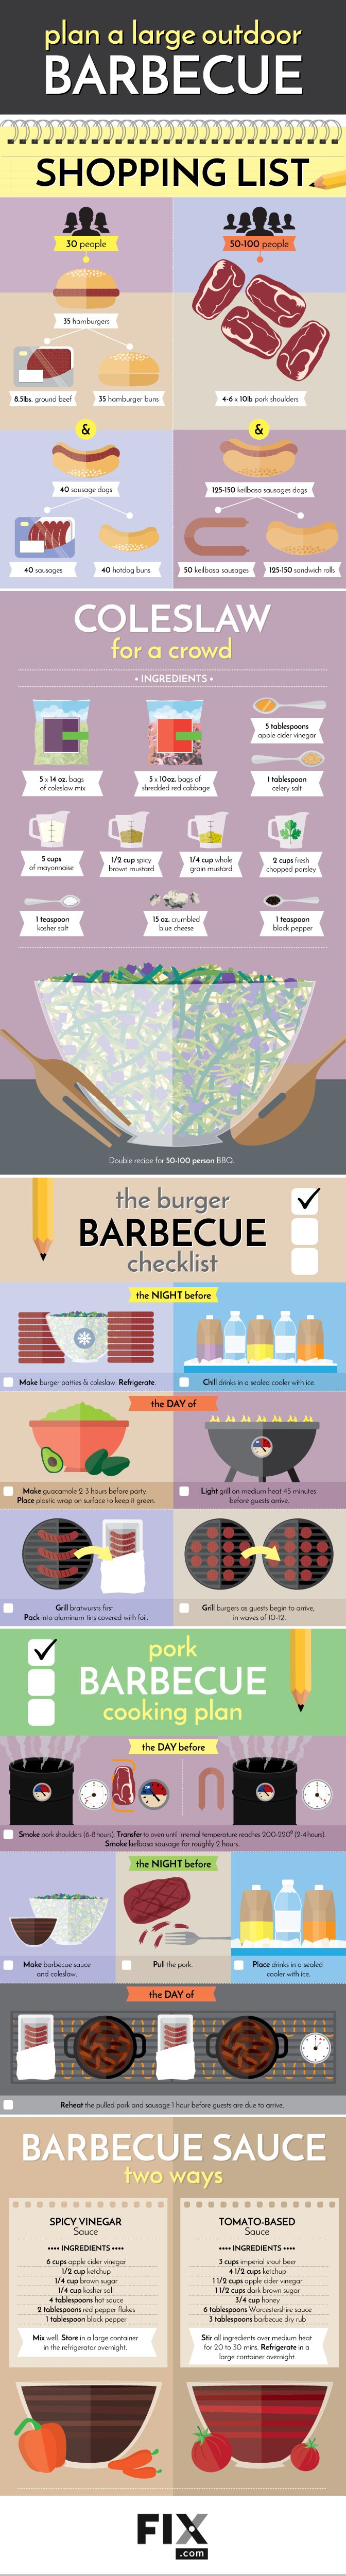 Our guide for hosting a large BBQ is great for graduations, rehearsal dinners and more! #DIY #BackyardBBQ